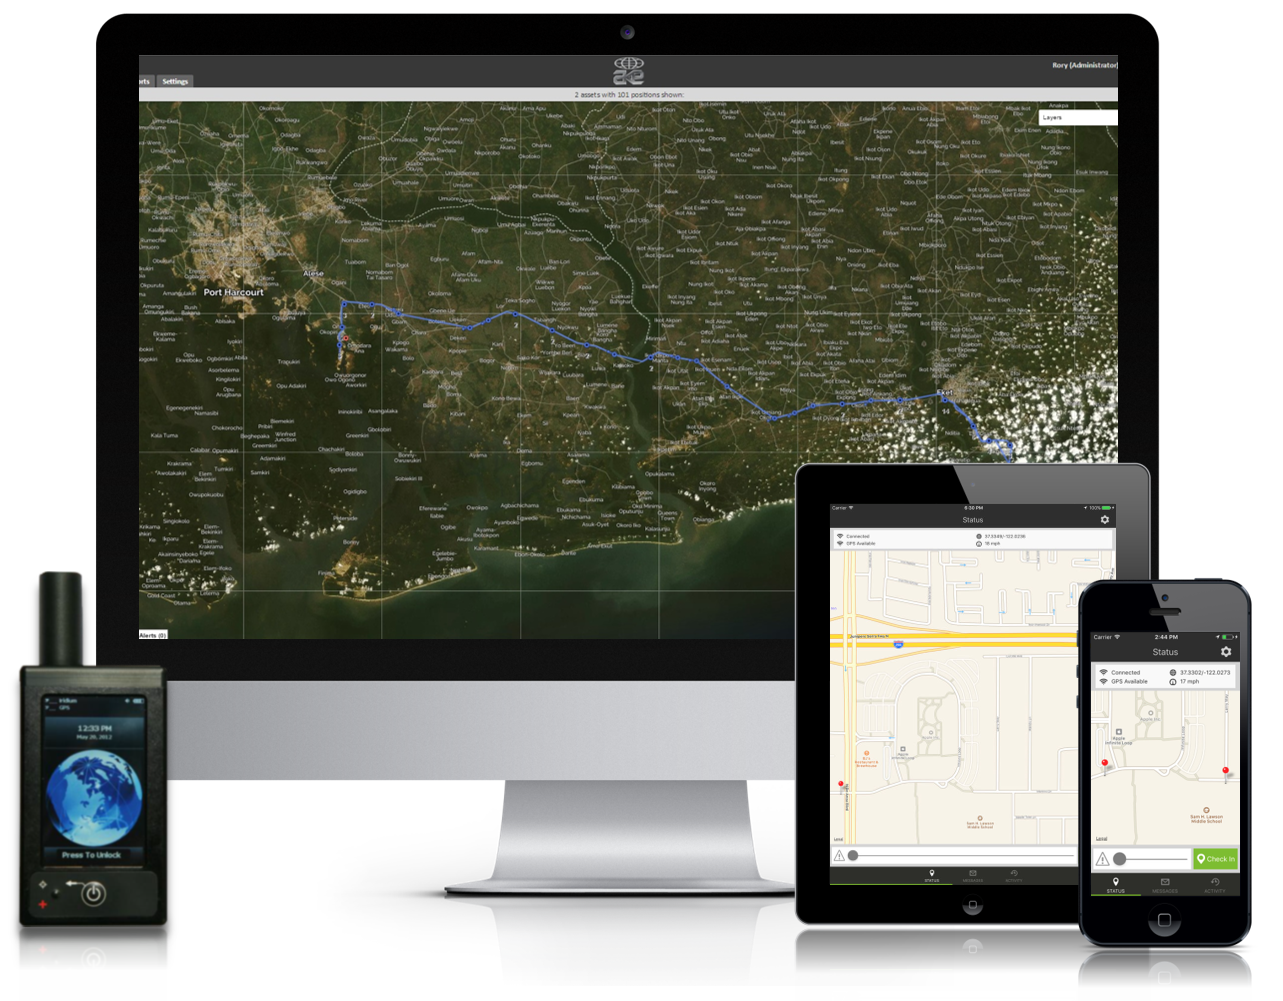 satellite tracking devices, GPS tracker, personal tracking device, iridium tracking, tracking software